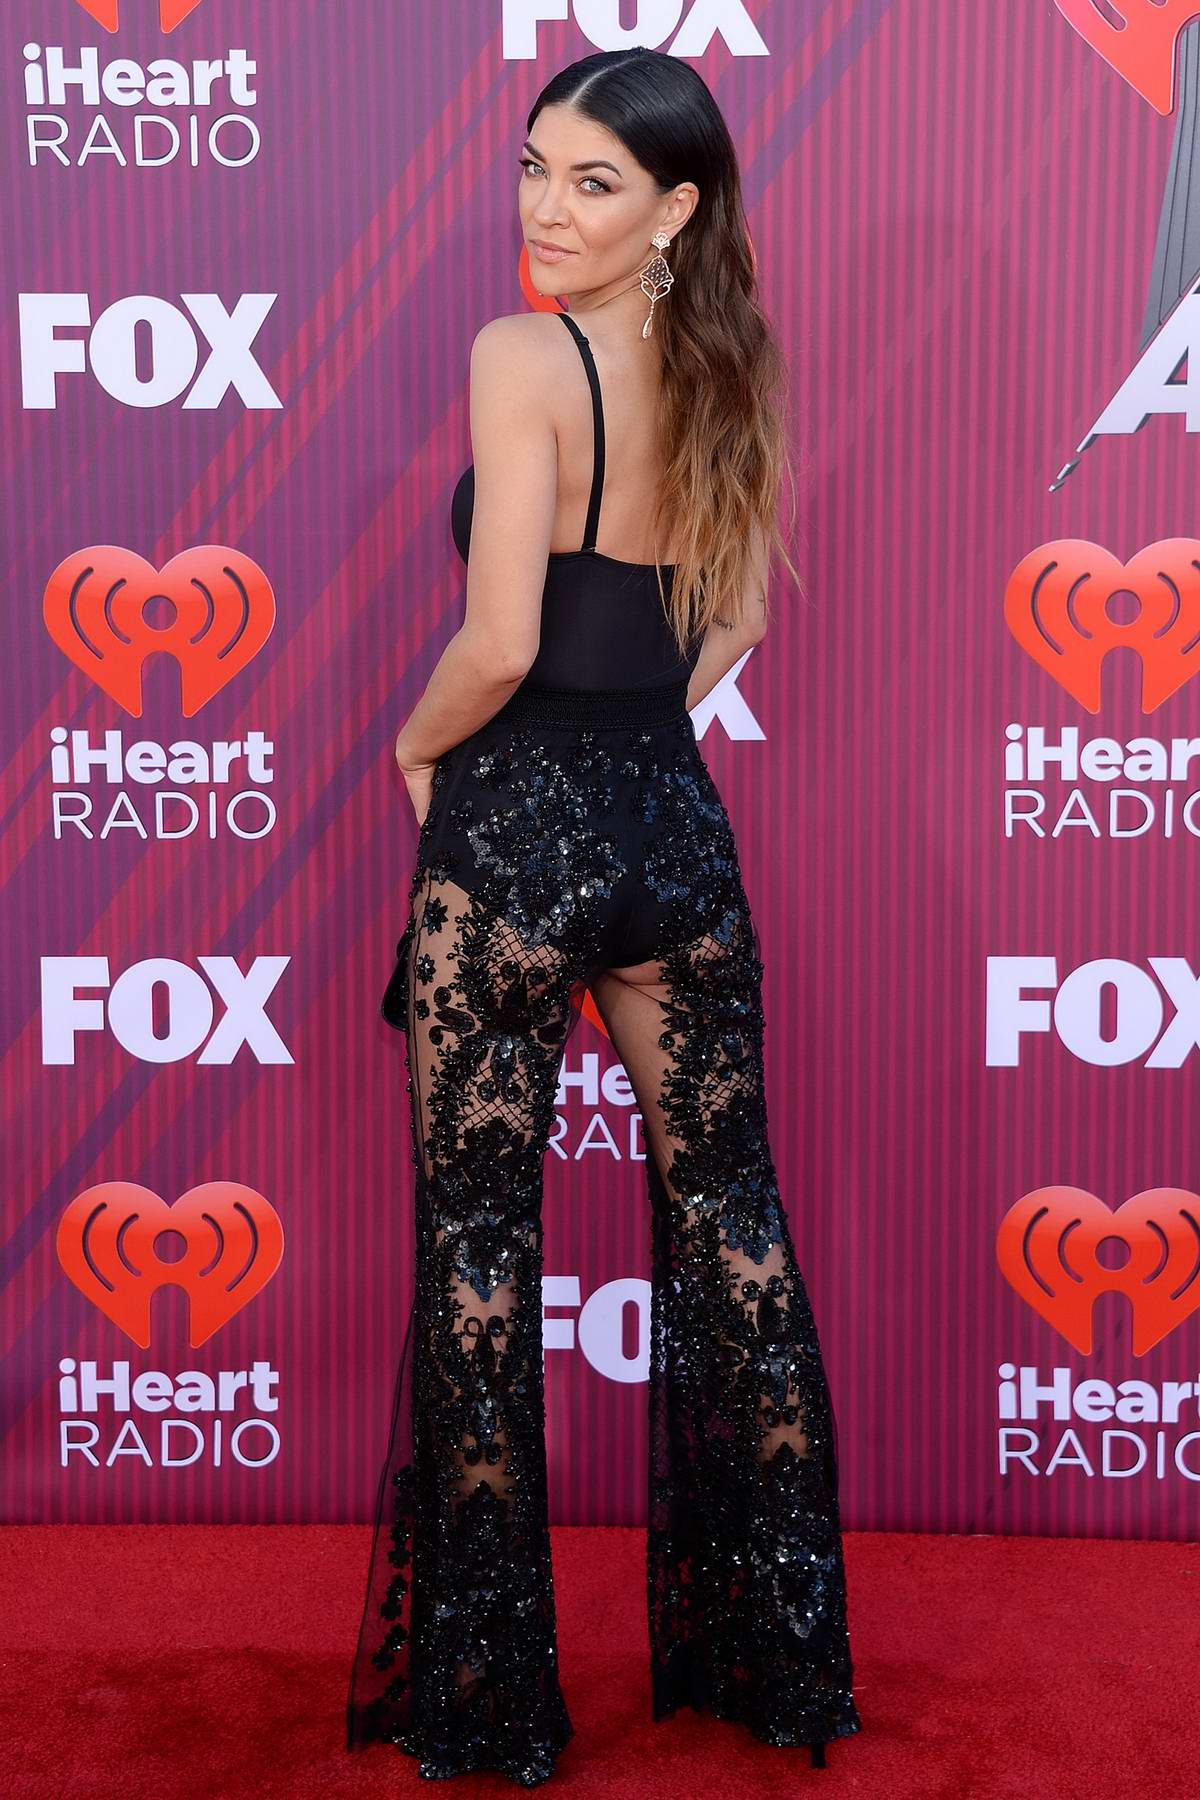 Jessica Szohr attends the 2019 iHeartRadio Music Awards at Microsoft Theater in Los Angeles